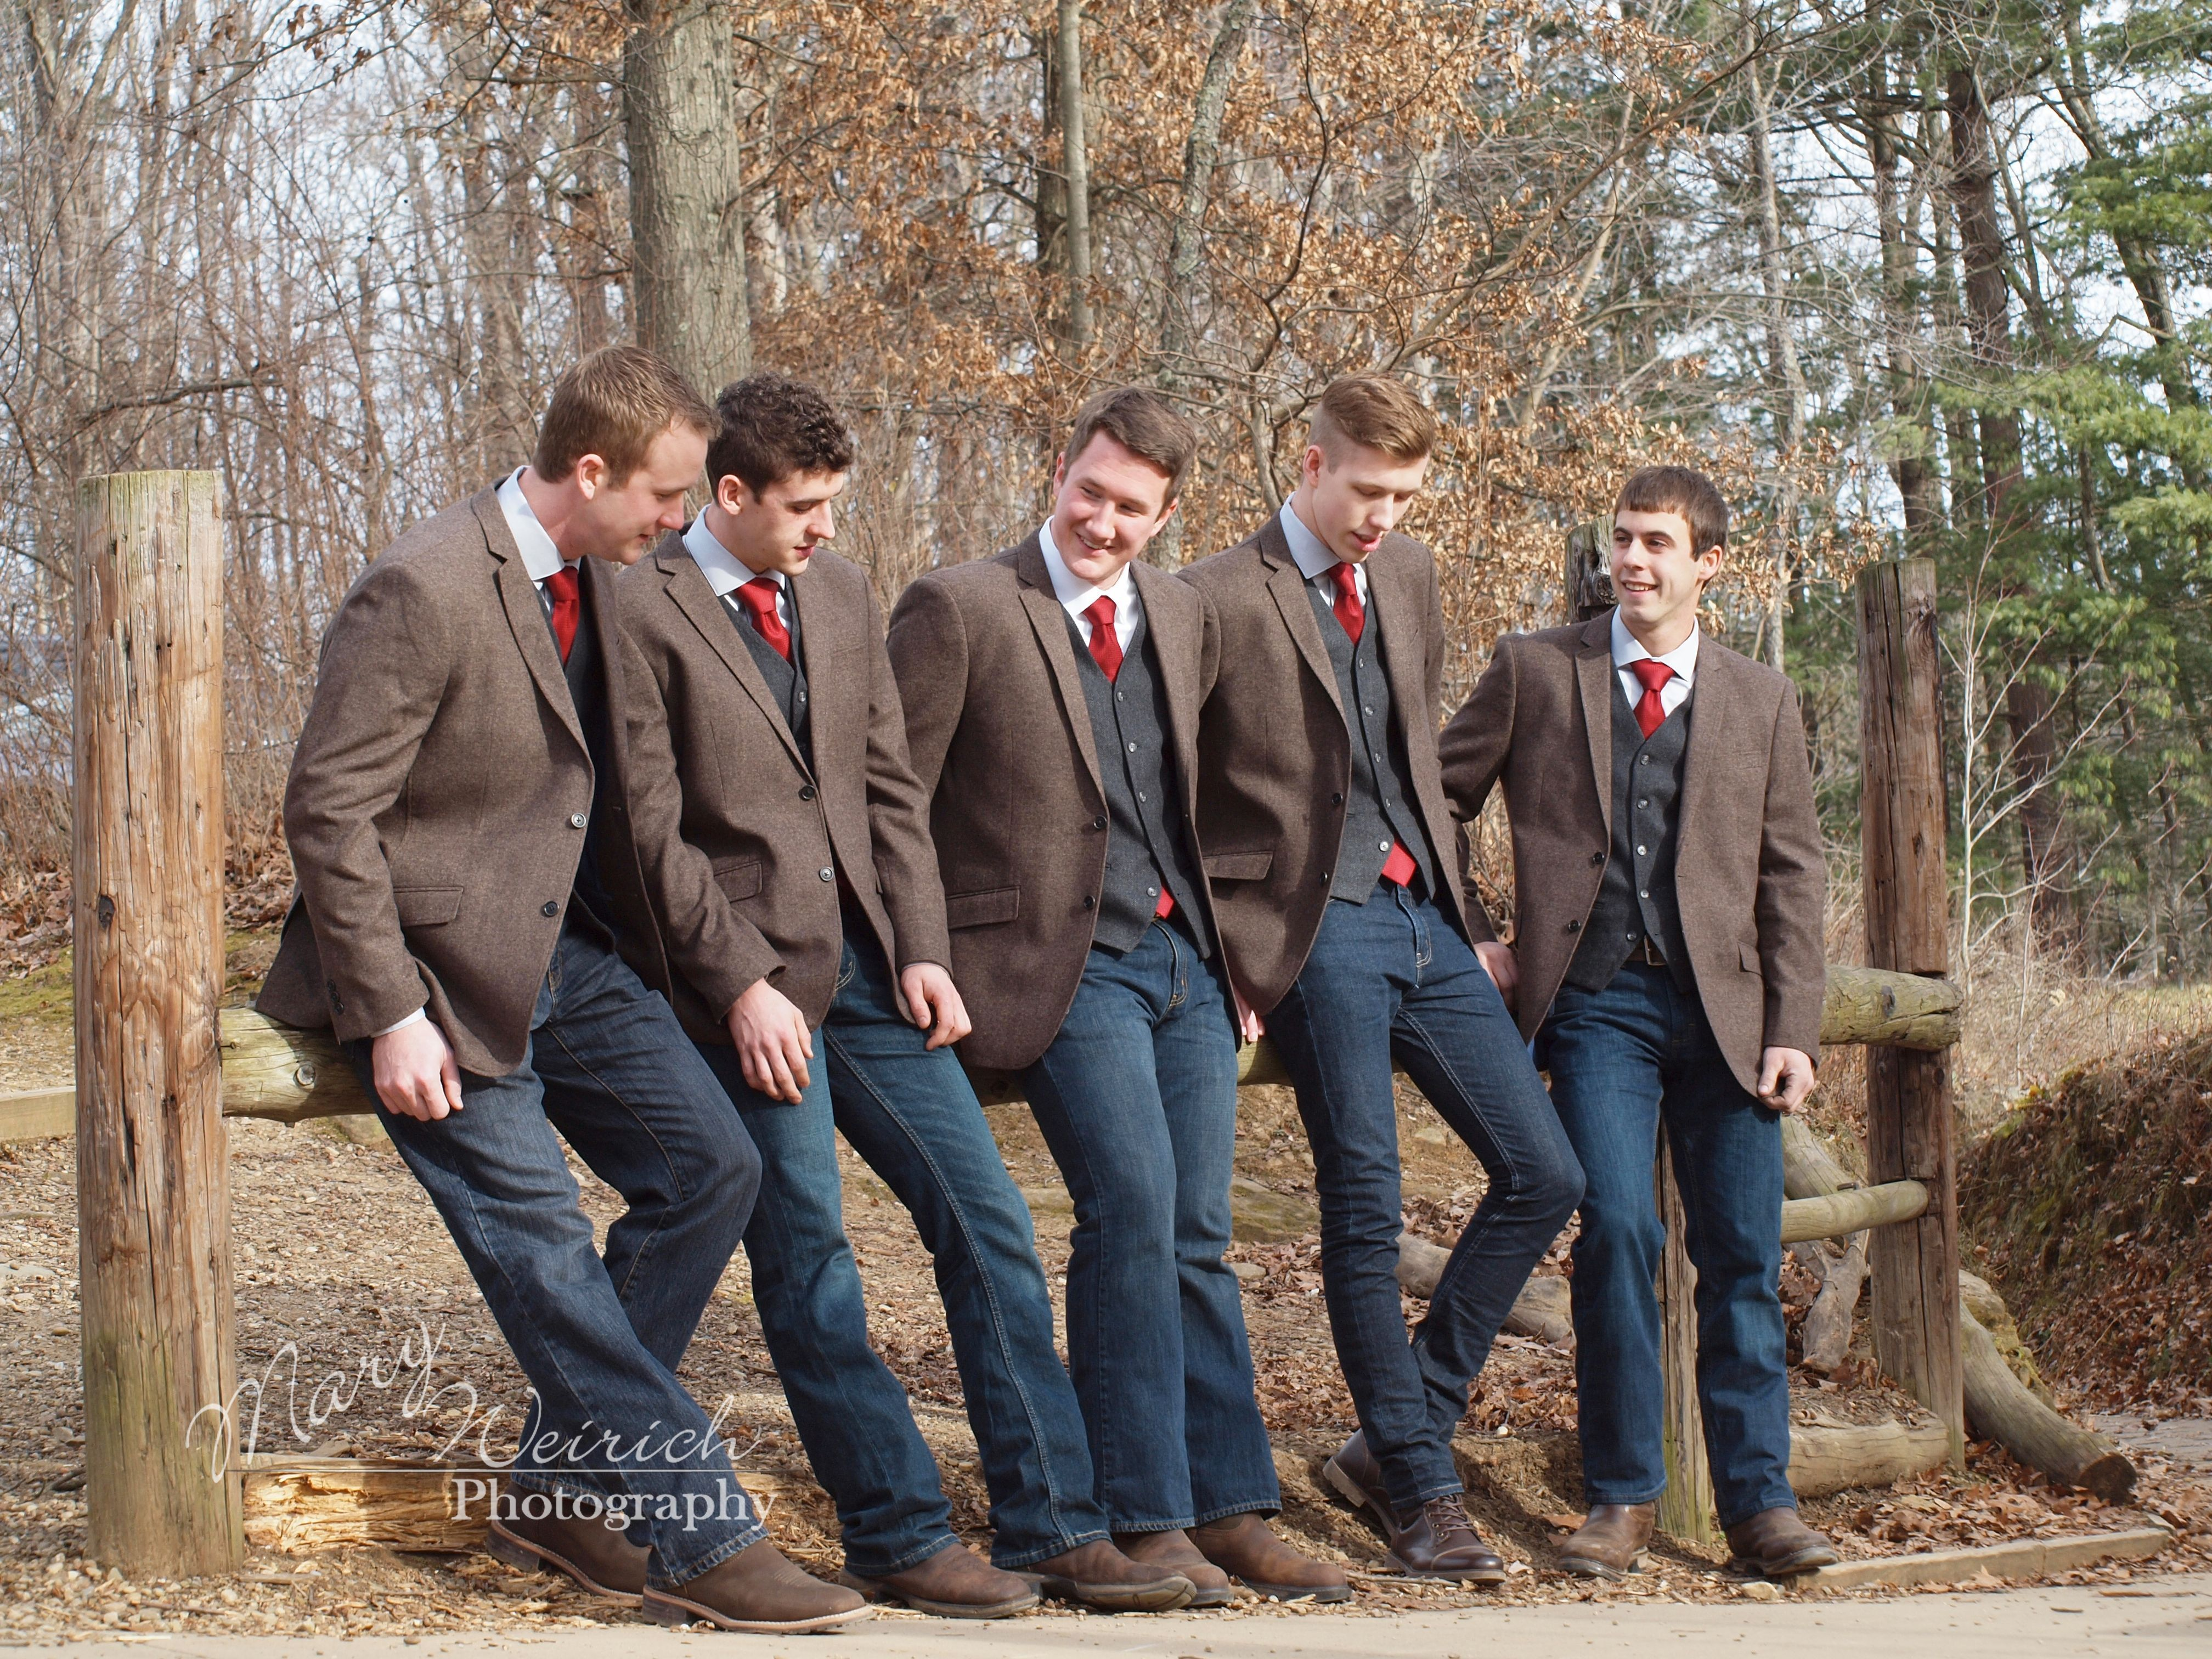 Groom And Groomsmen In Casual Wedding Attire. Jeans, Brown